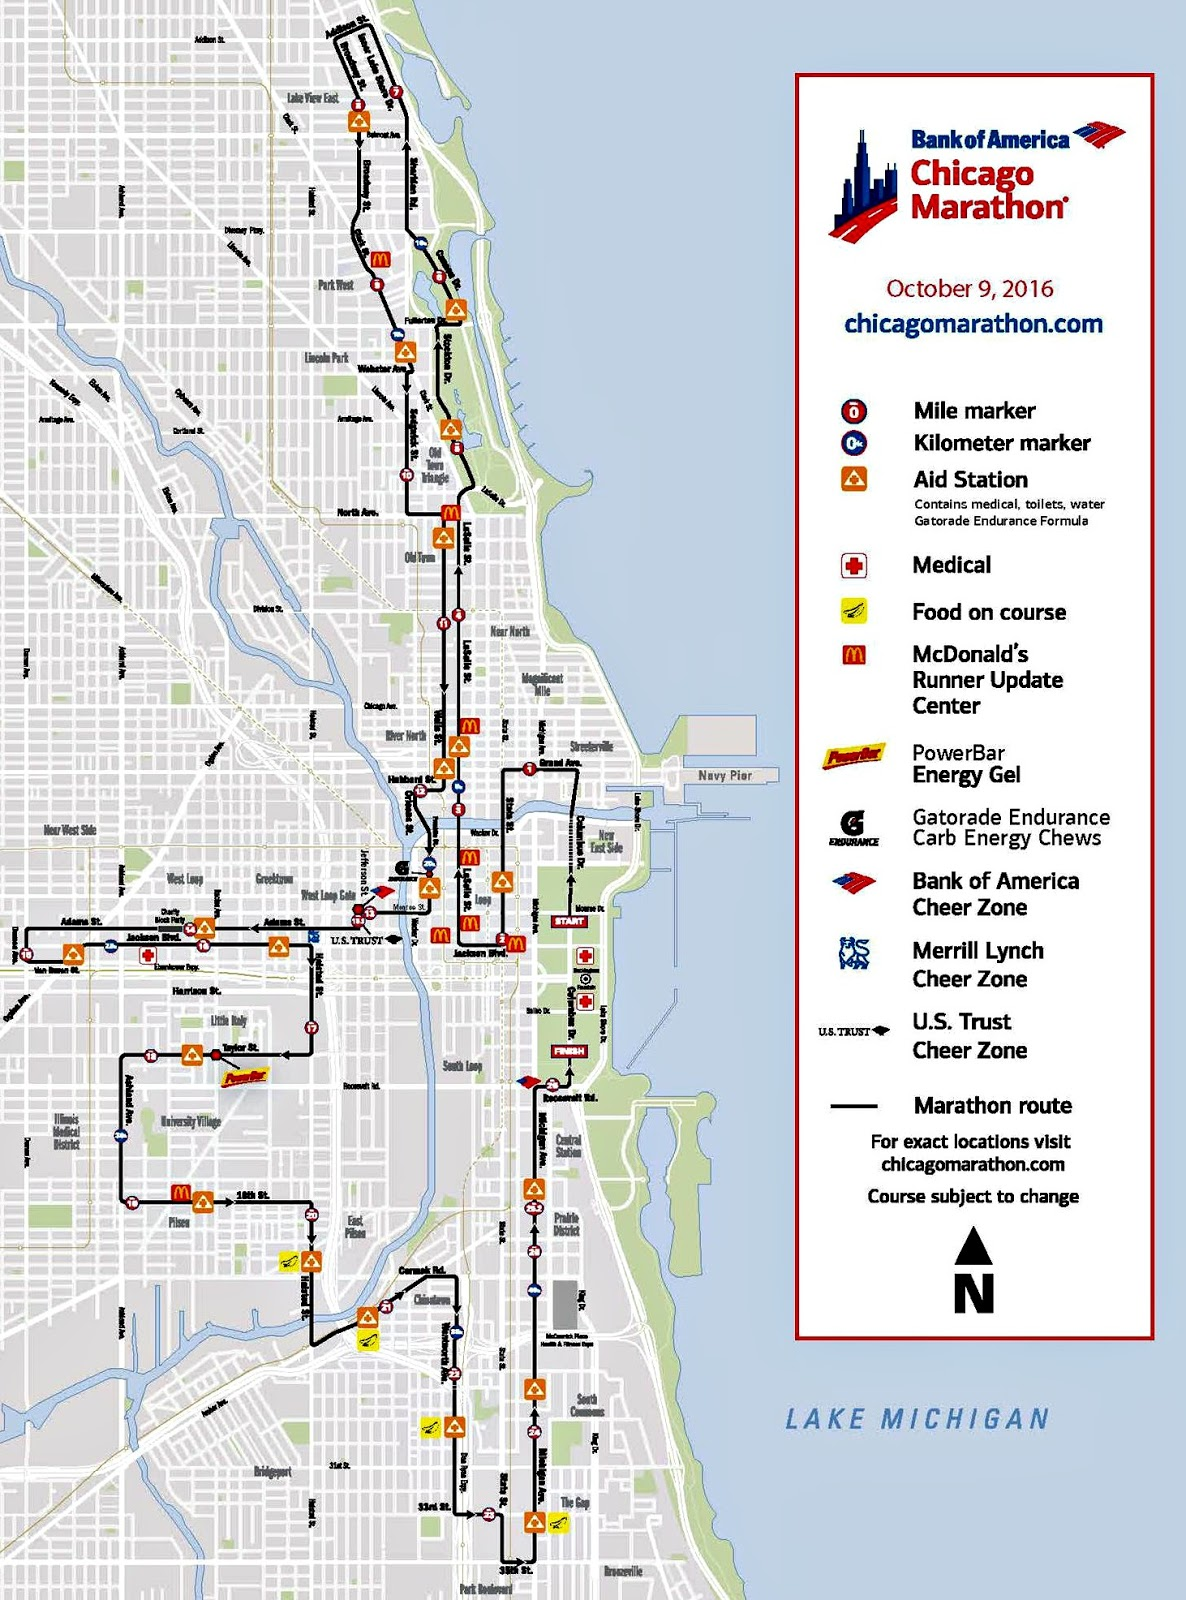 LakeView Historical Chronicles Marathon in the Hood